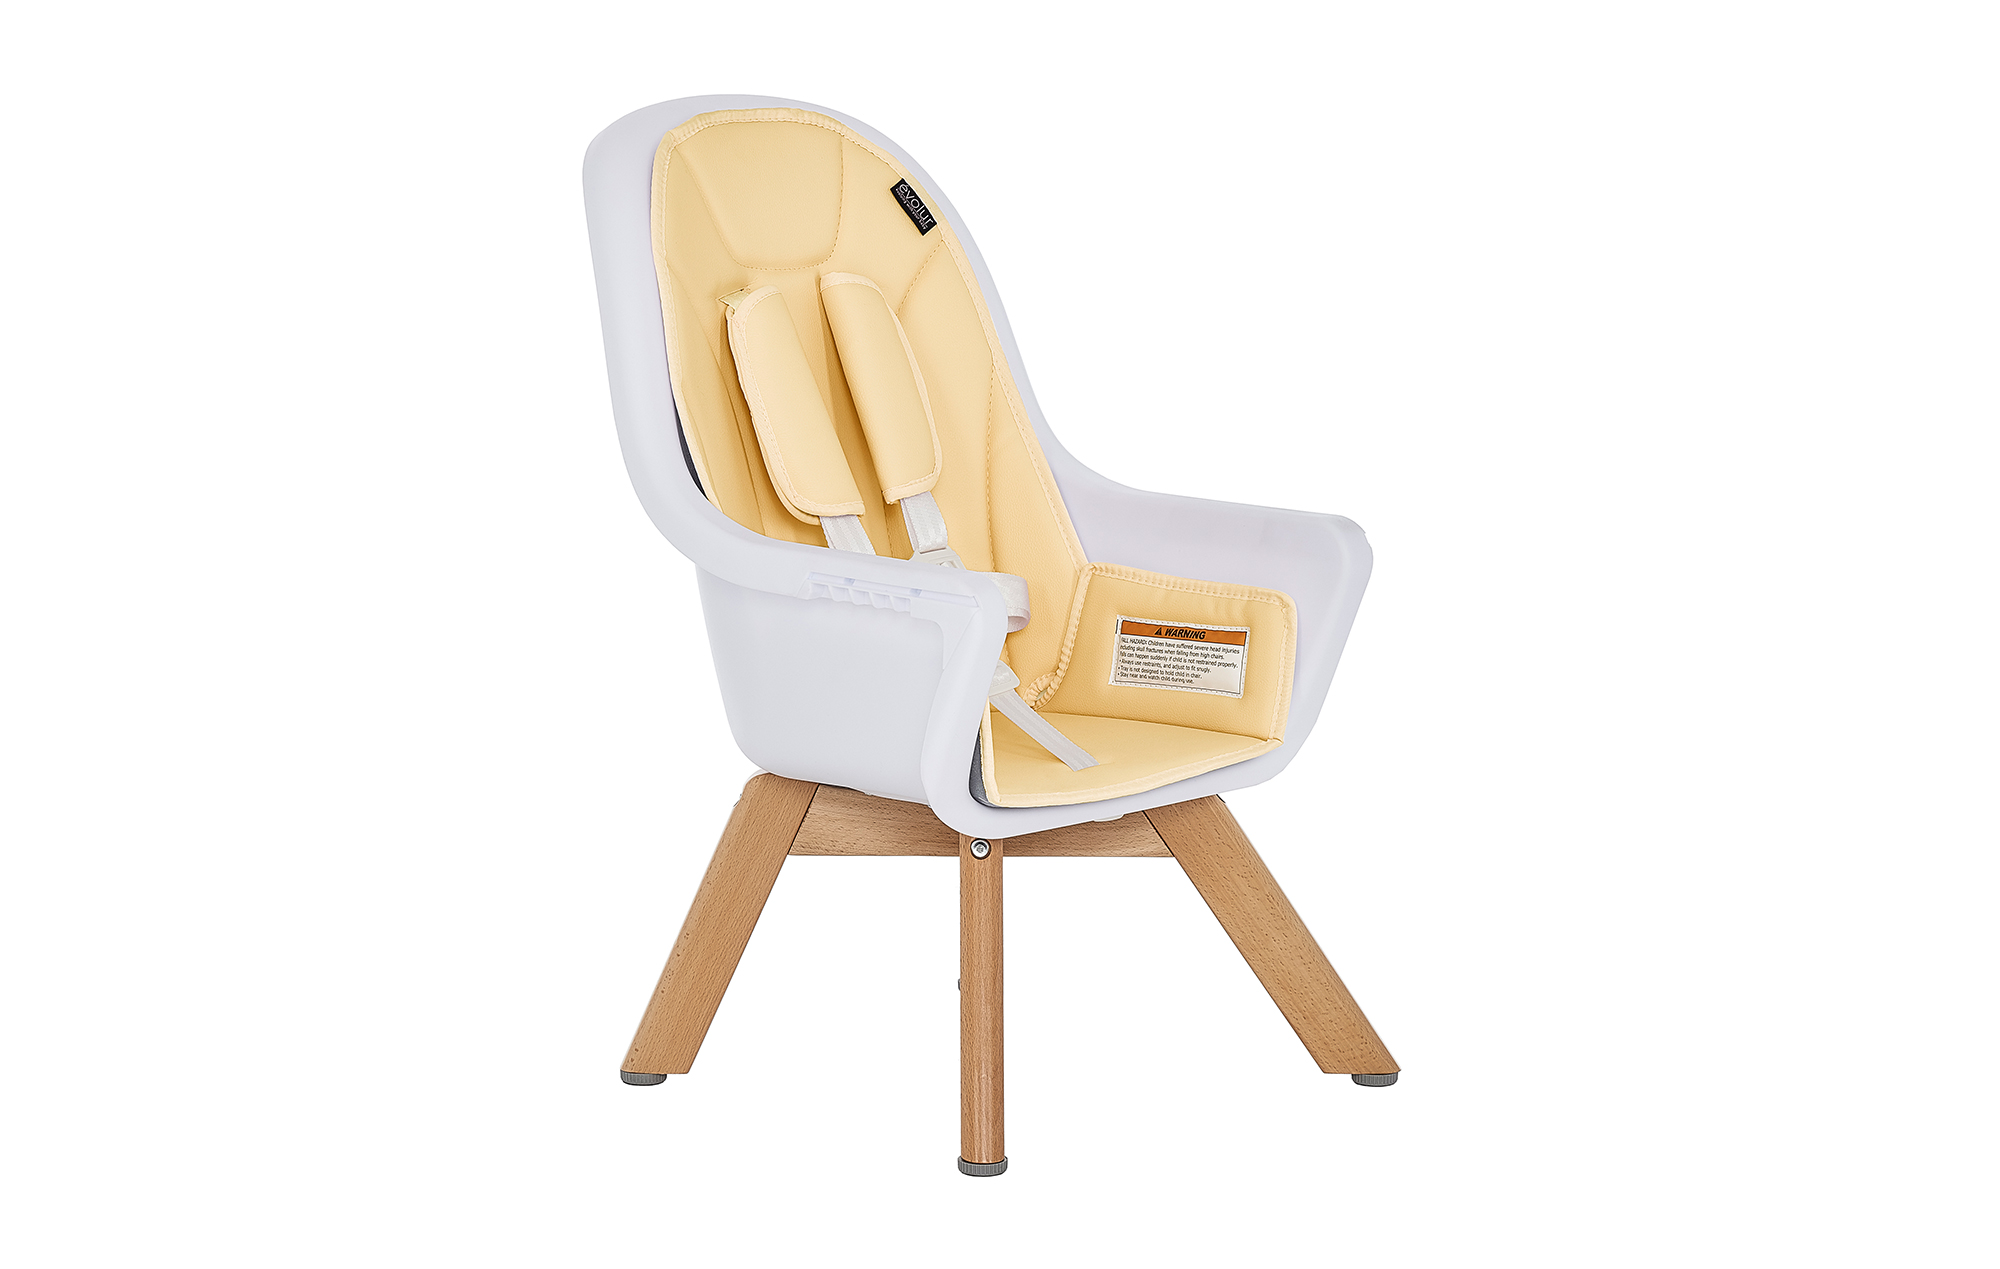 Zoodle 2-in-1 High Chair in Yellow